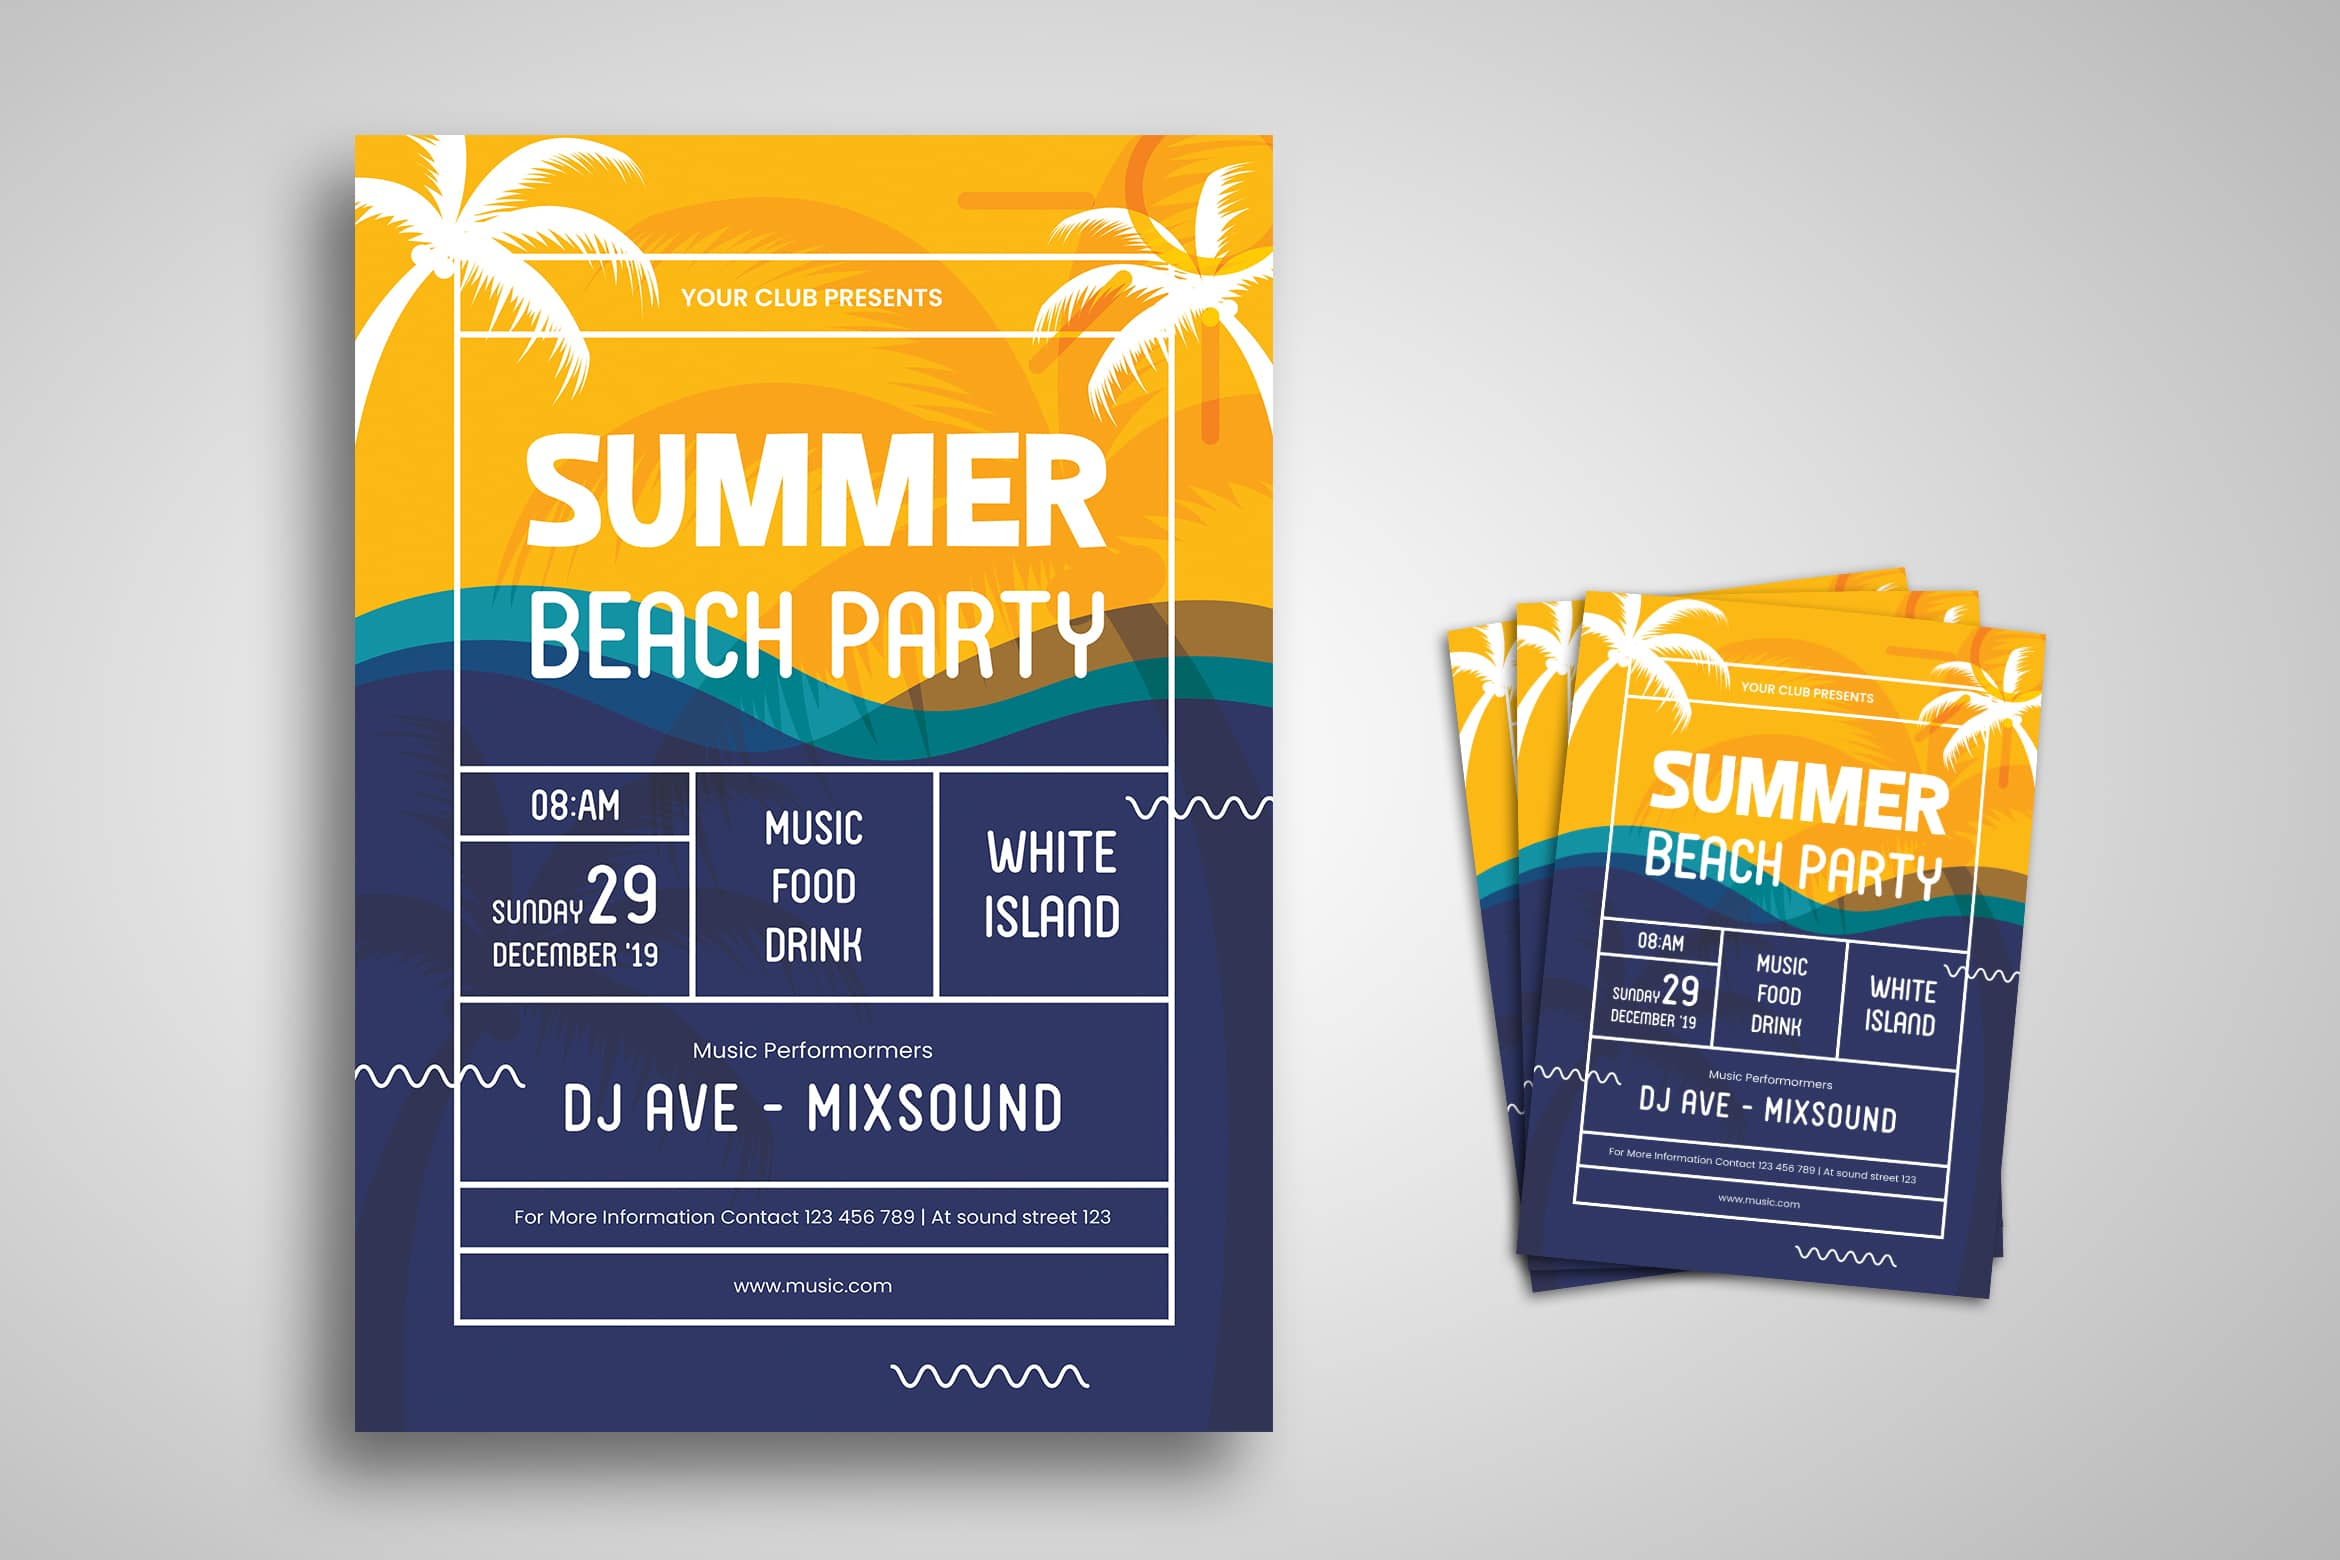 Flyer Template - Summer Beach Party